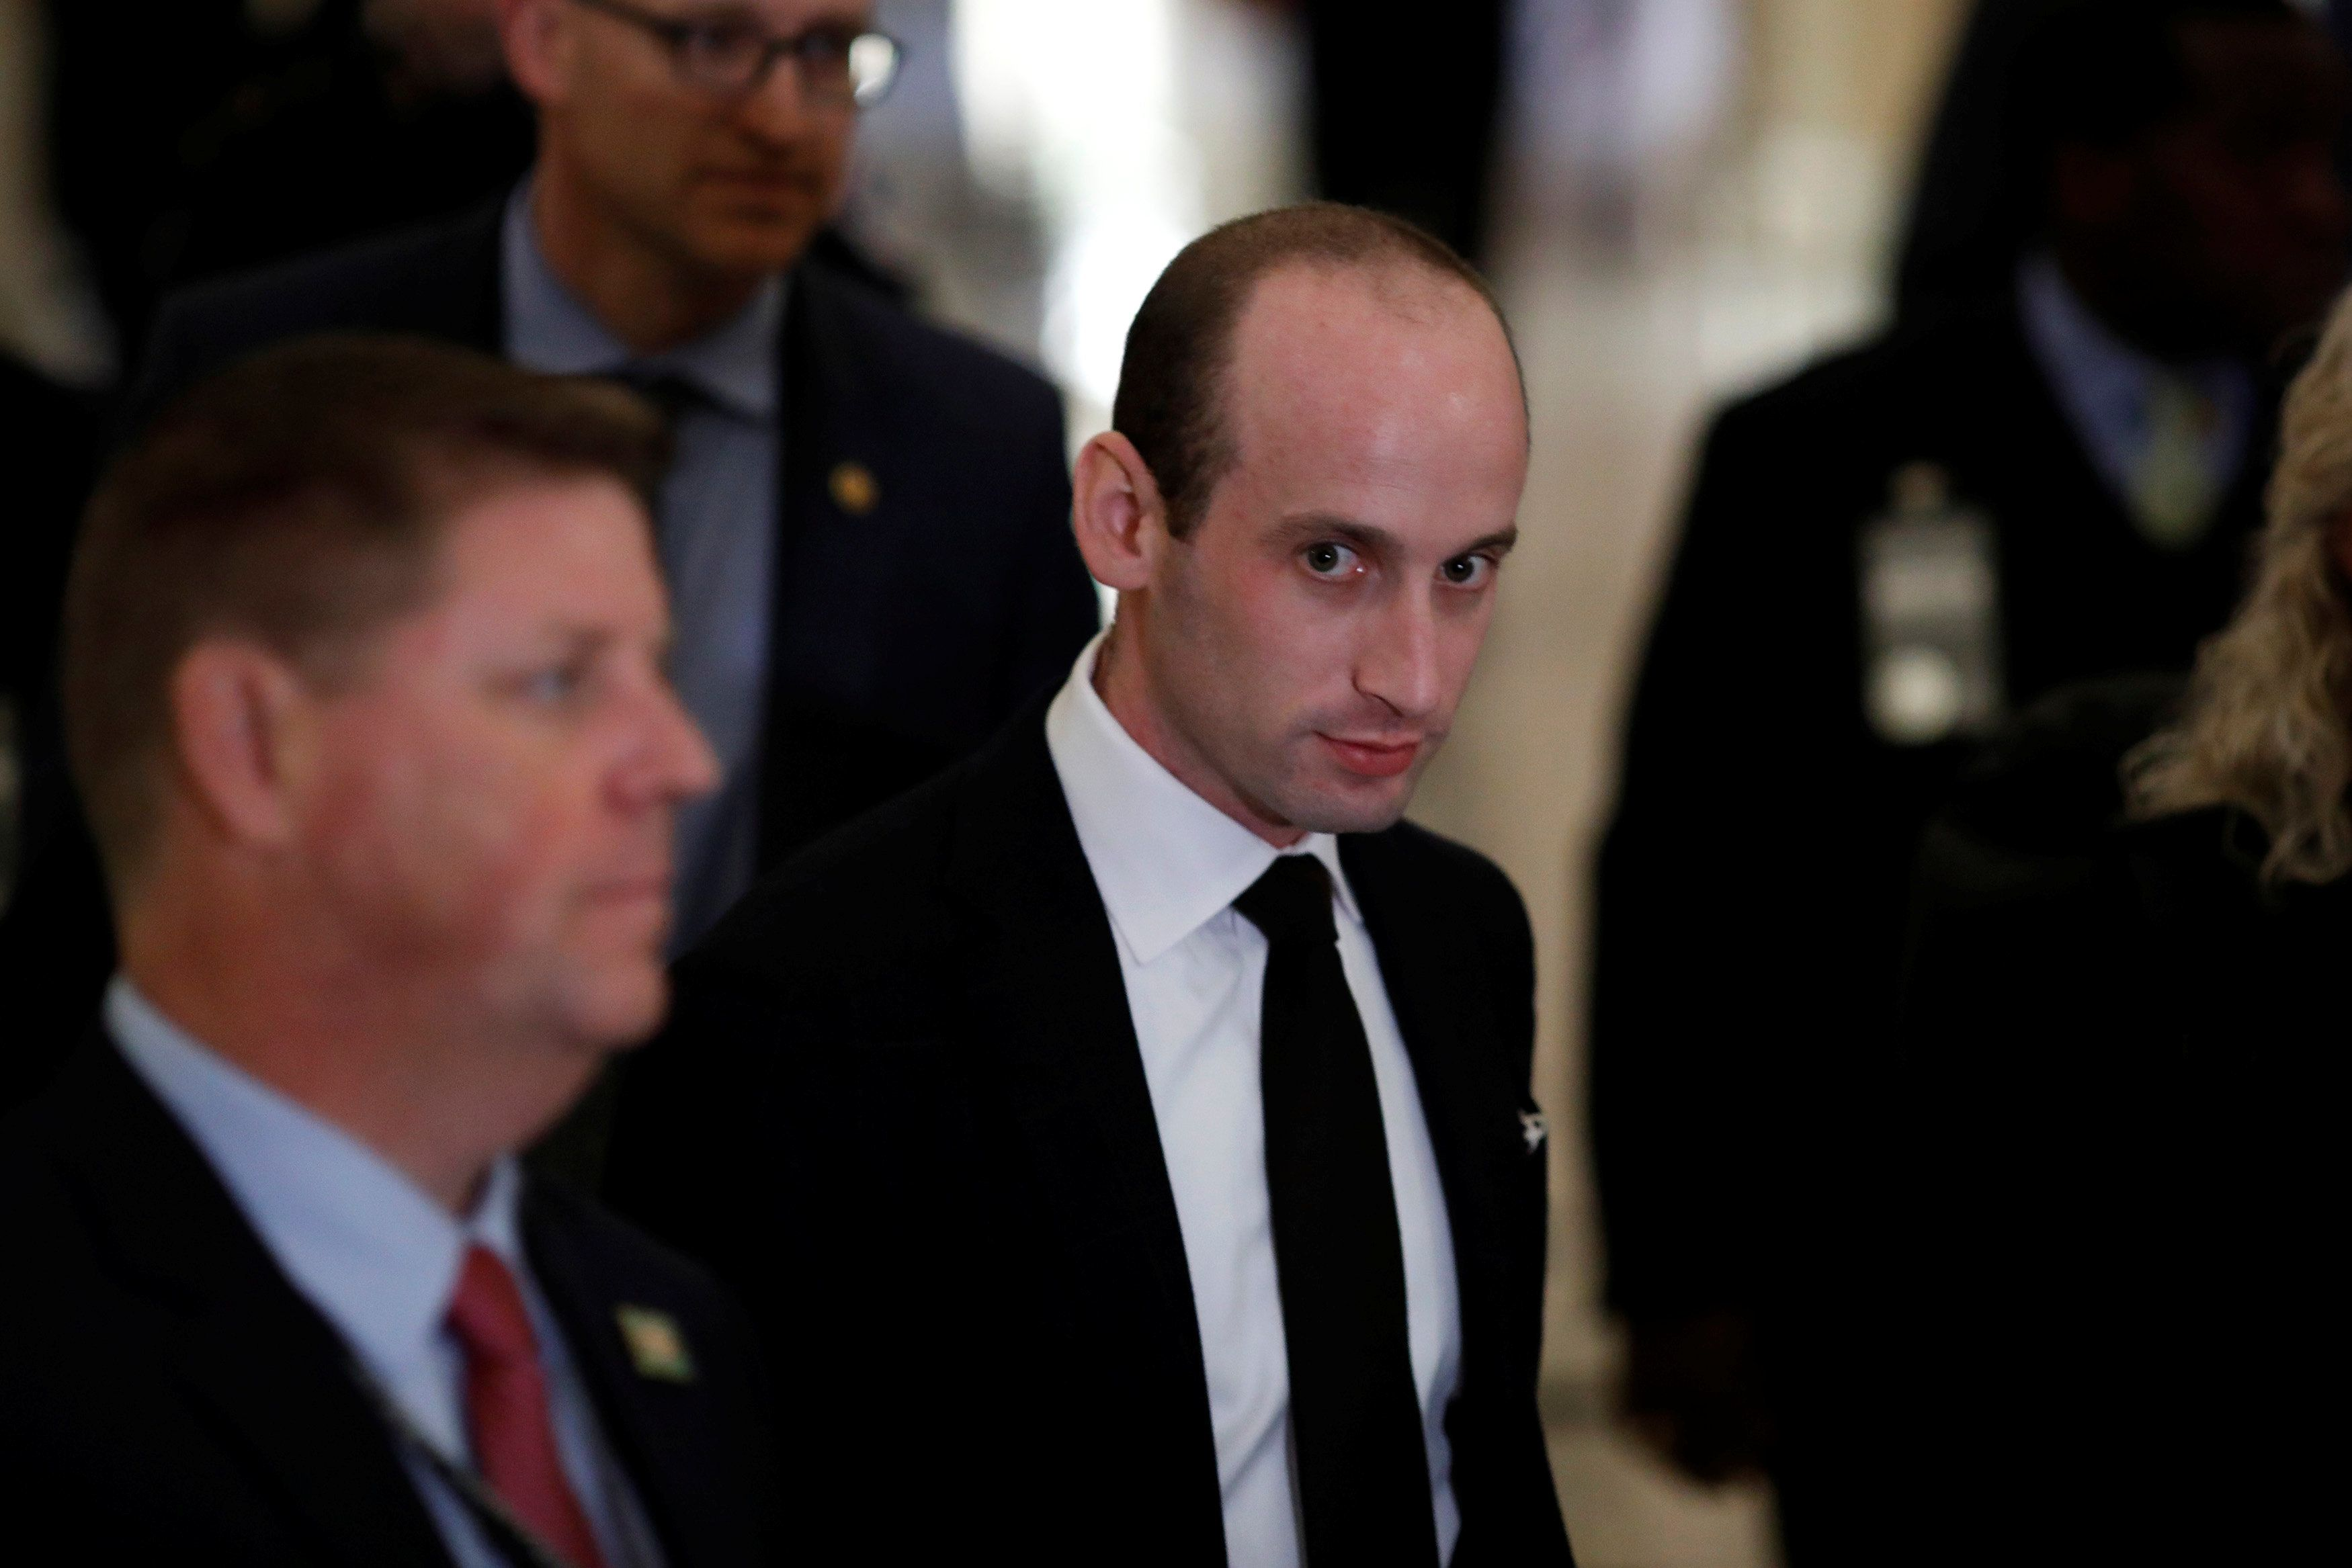 Stephen Miller, White House Senior Advisor for Policy, departs following a Congressional Gold Medal ceremony for former Senator Bob Dole at the U.S. Capitol in Washington, U.S., January 17, 2018. REUTERS/Aaron P. Bernstein